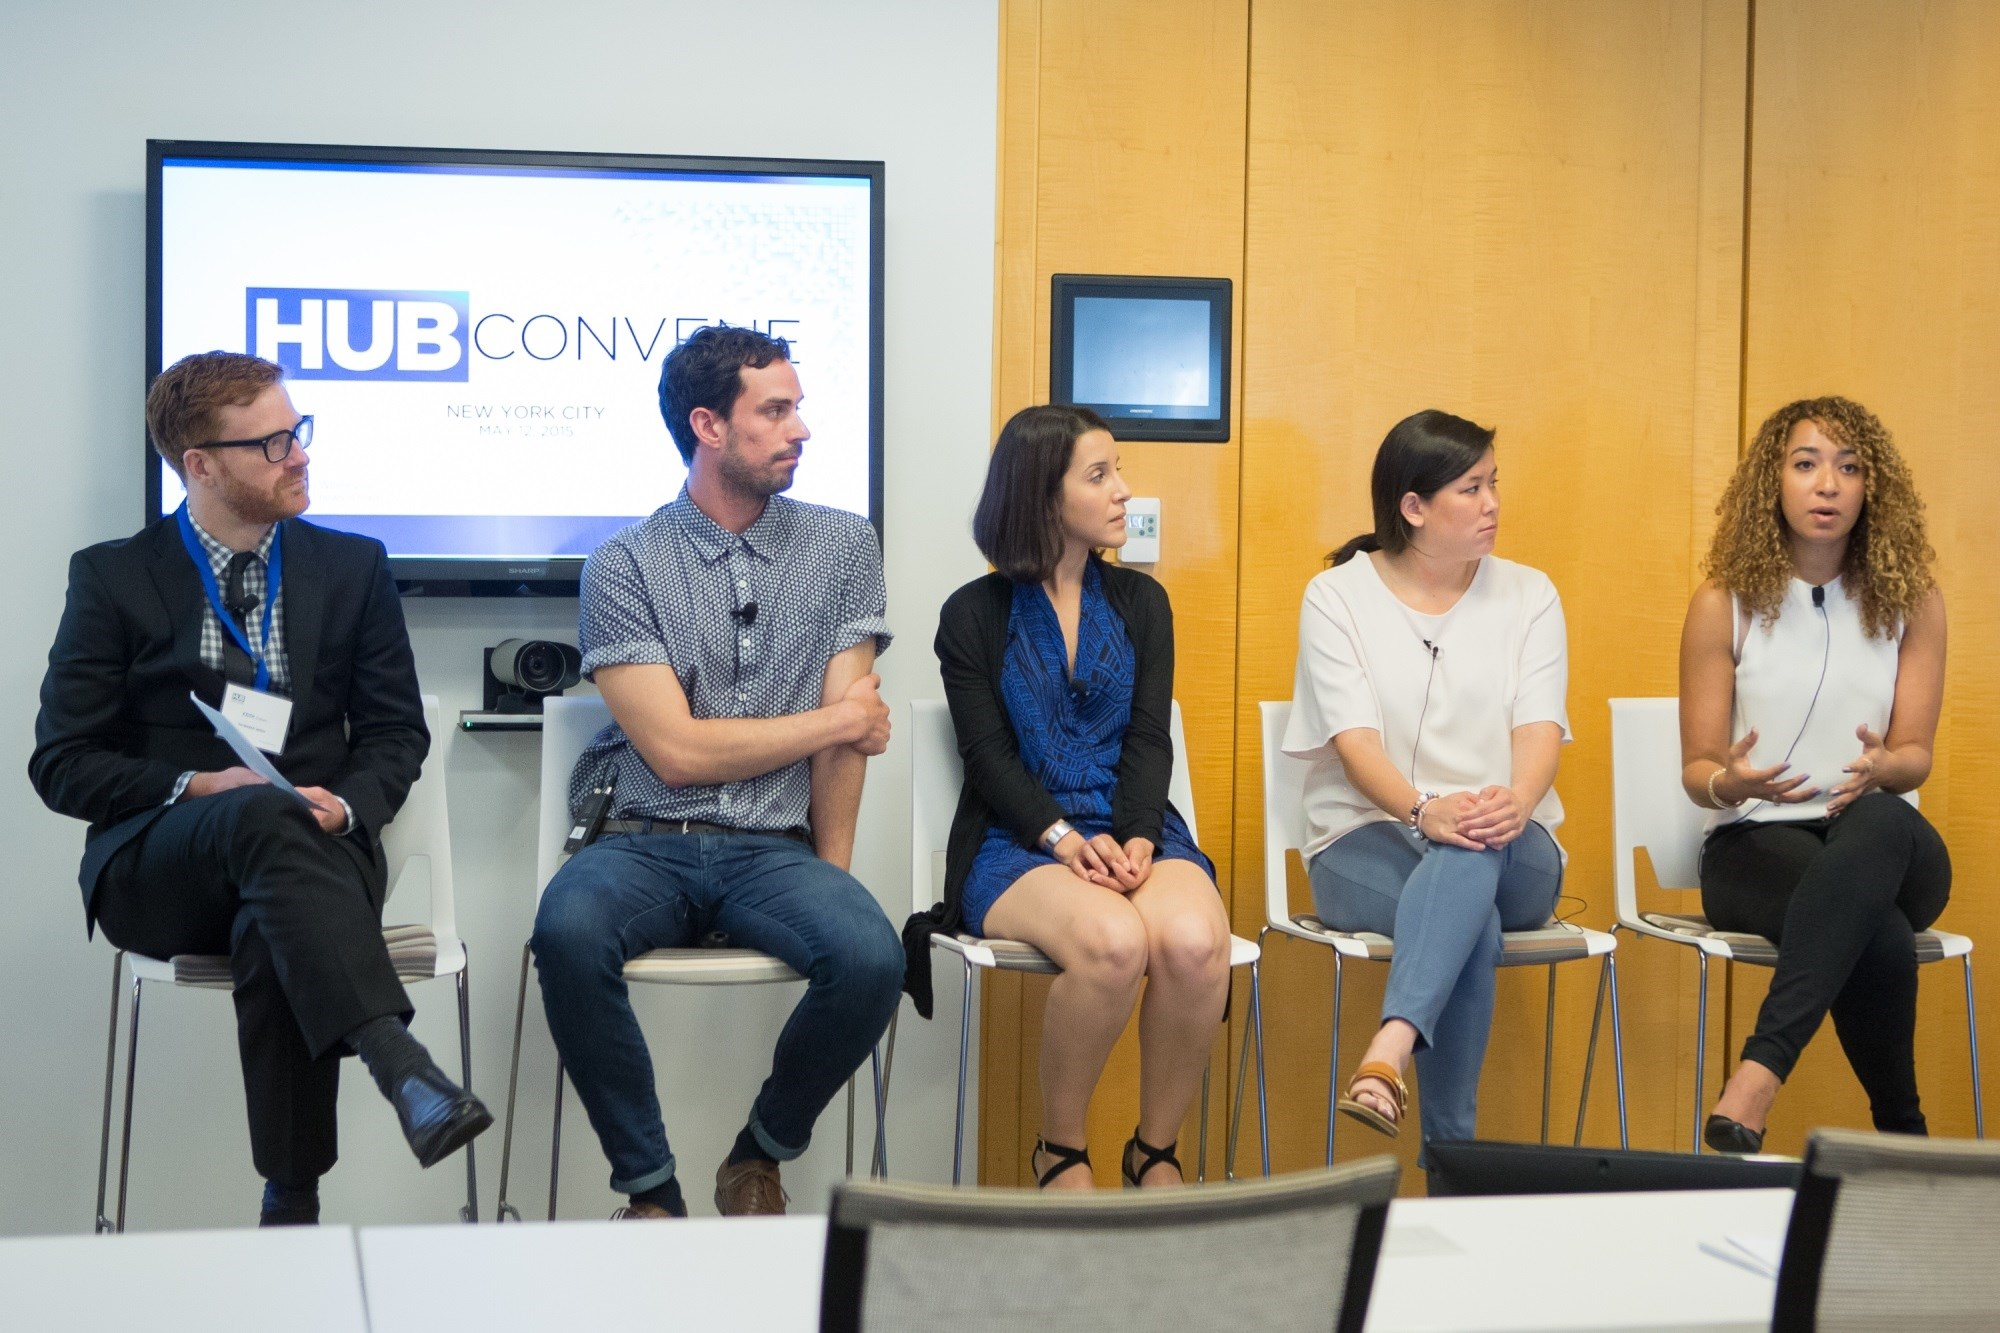 Panelists at the Hub Convene conference say successful social media efforts are backed by a strong strategy and purpose.